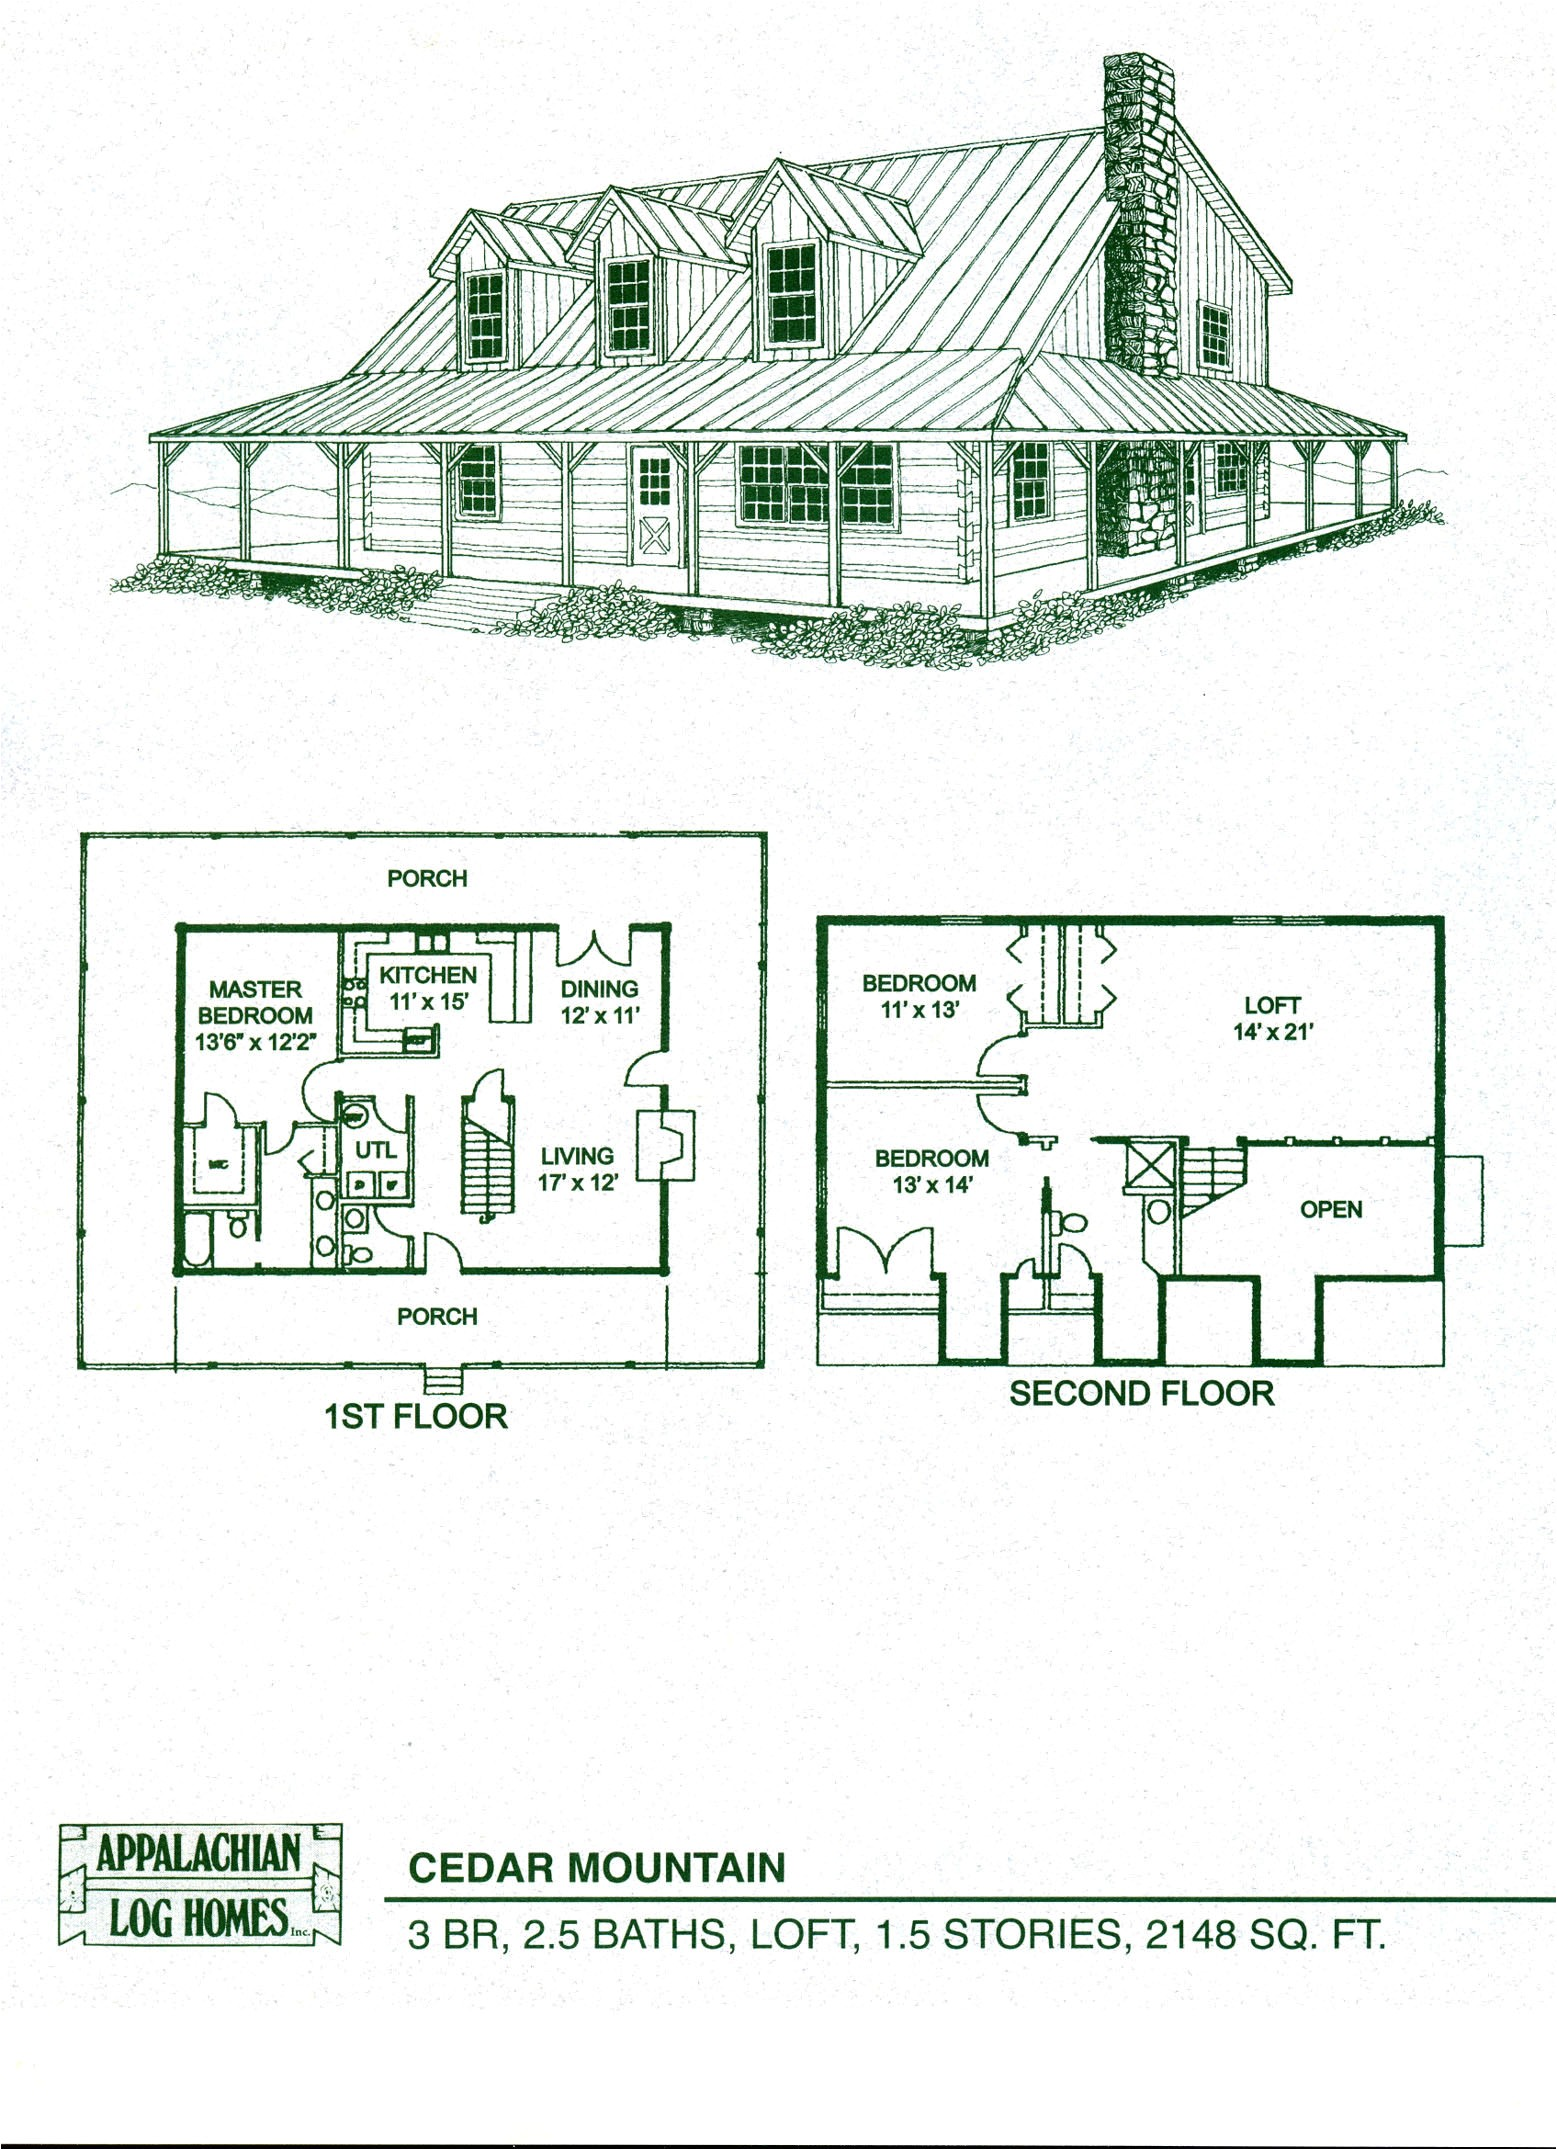 log home floor plans cabin kits appalachian homes also 1 bedroom